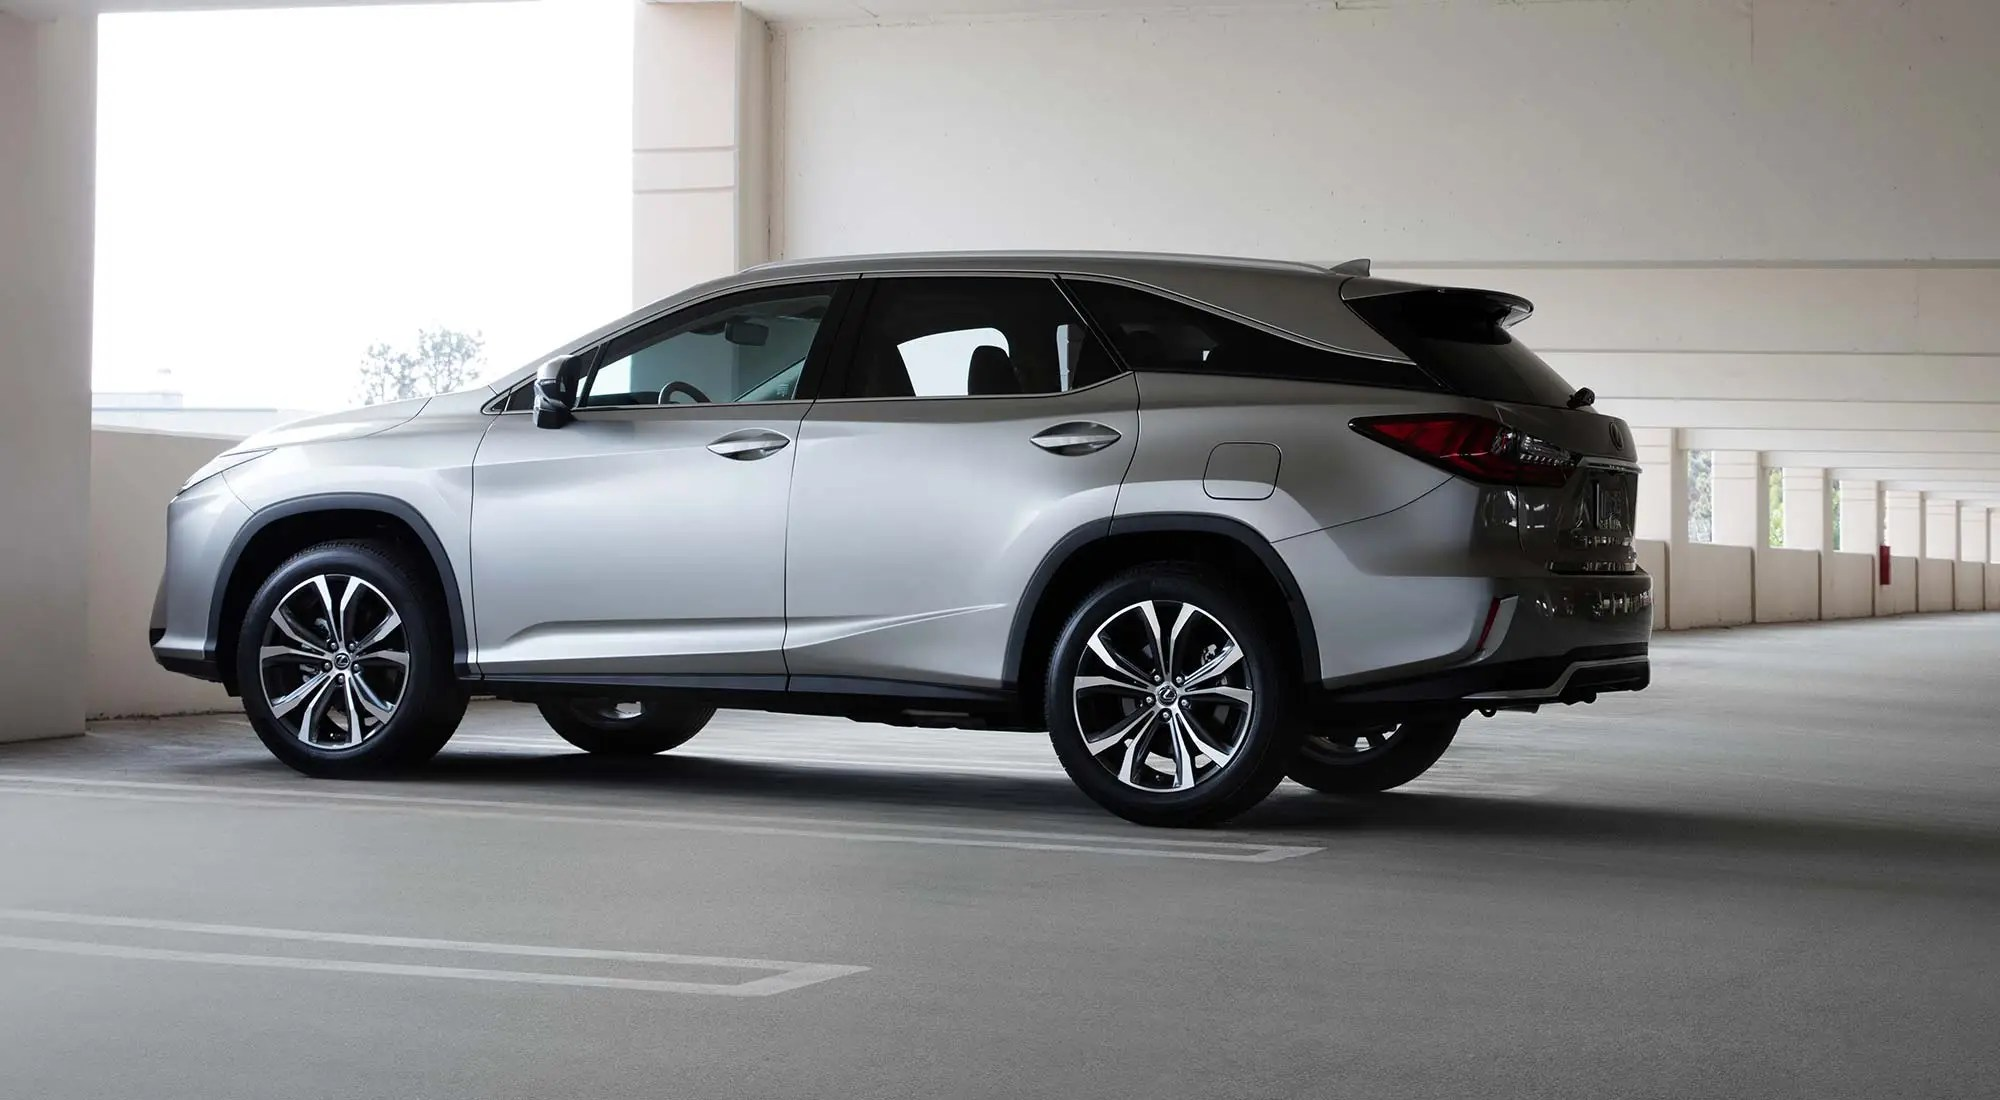 Lexus goes big with an extra large RX350L and RX450hL crossover